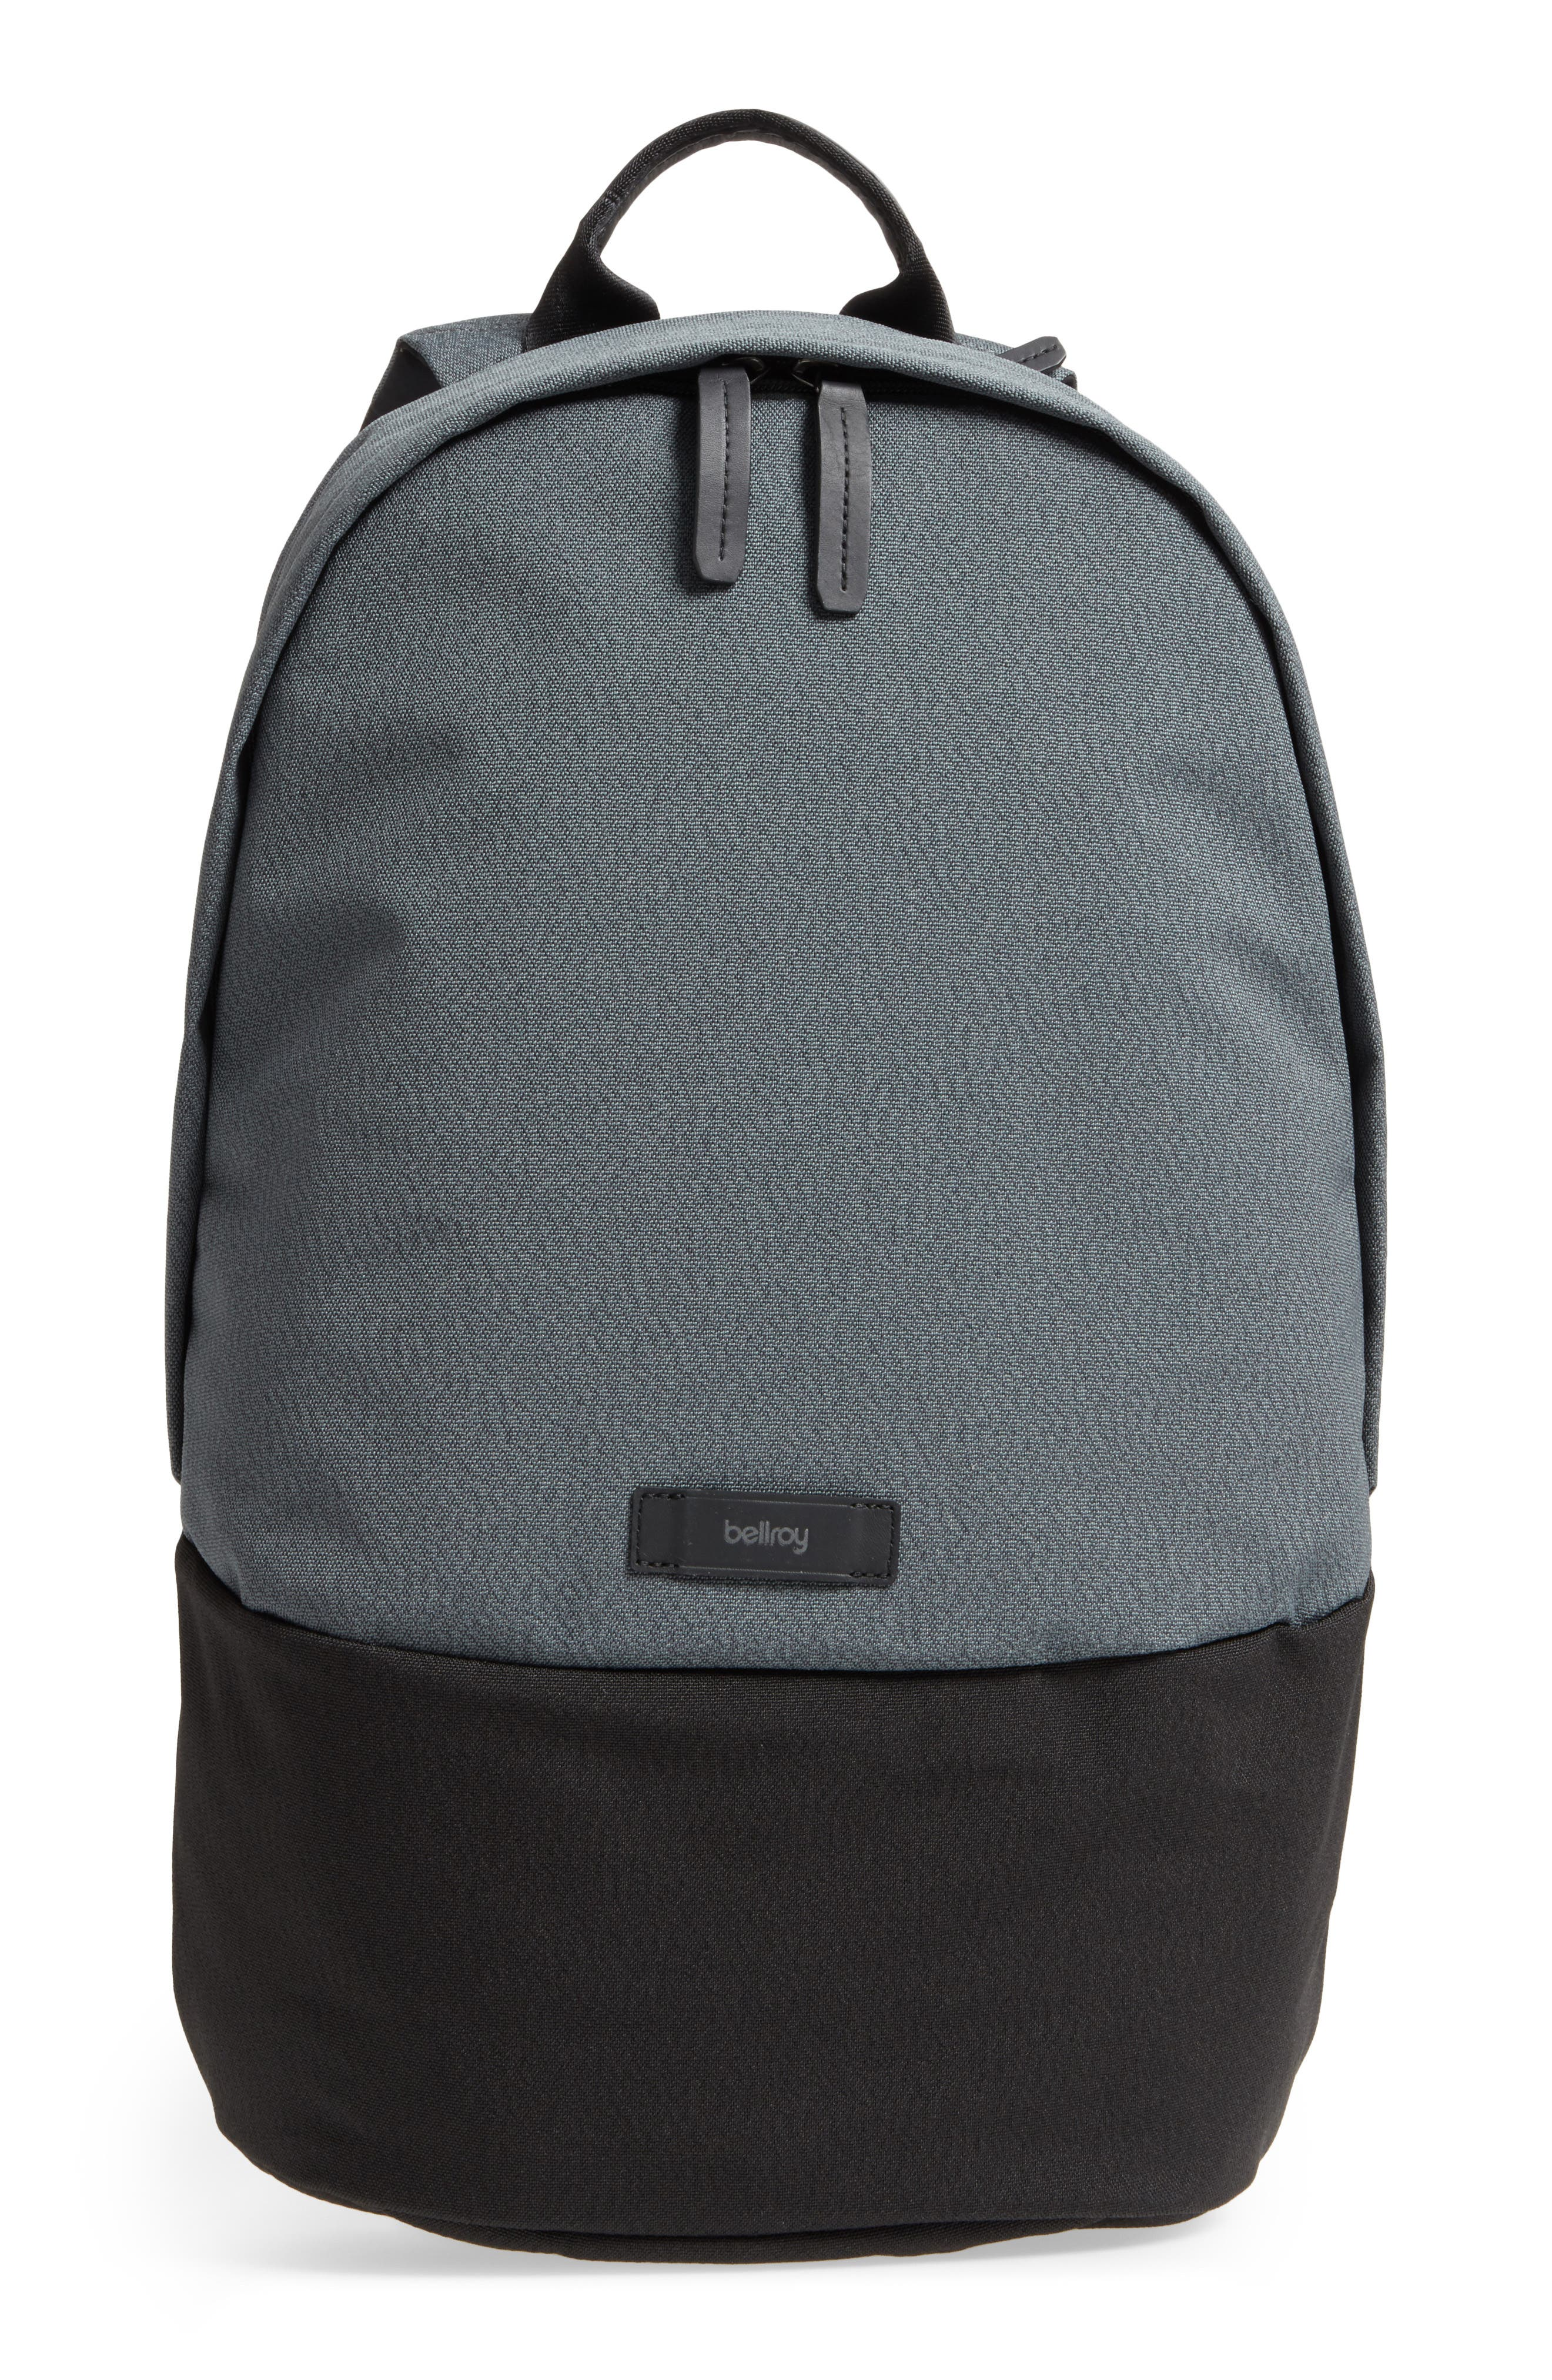 Main Image - Bellroy Classic Backpack